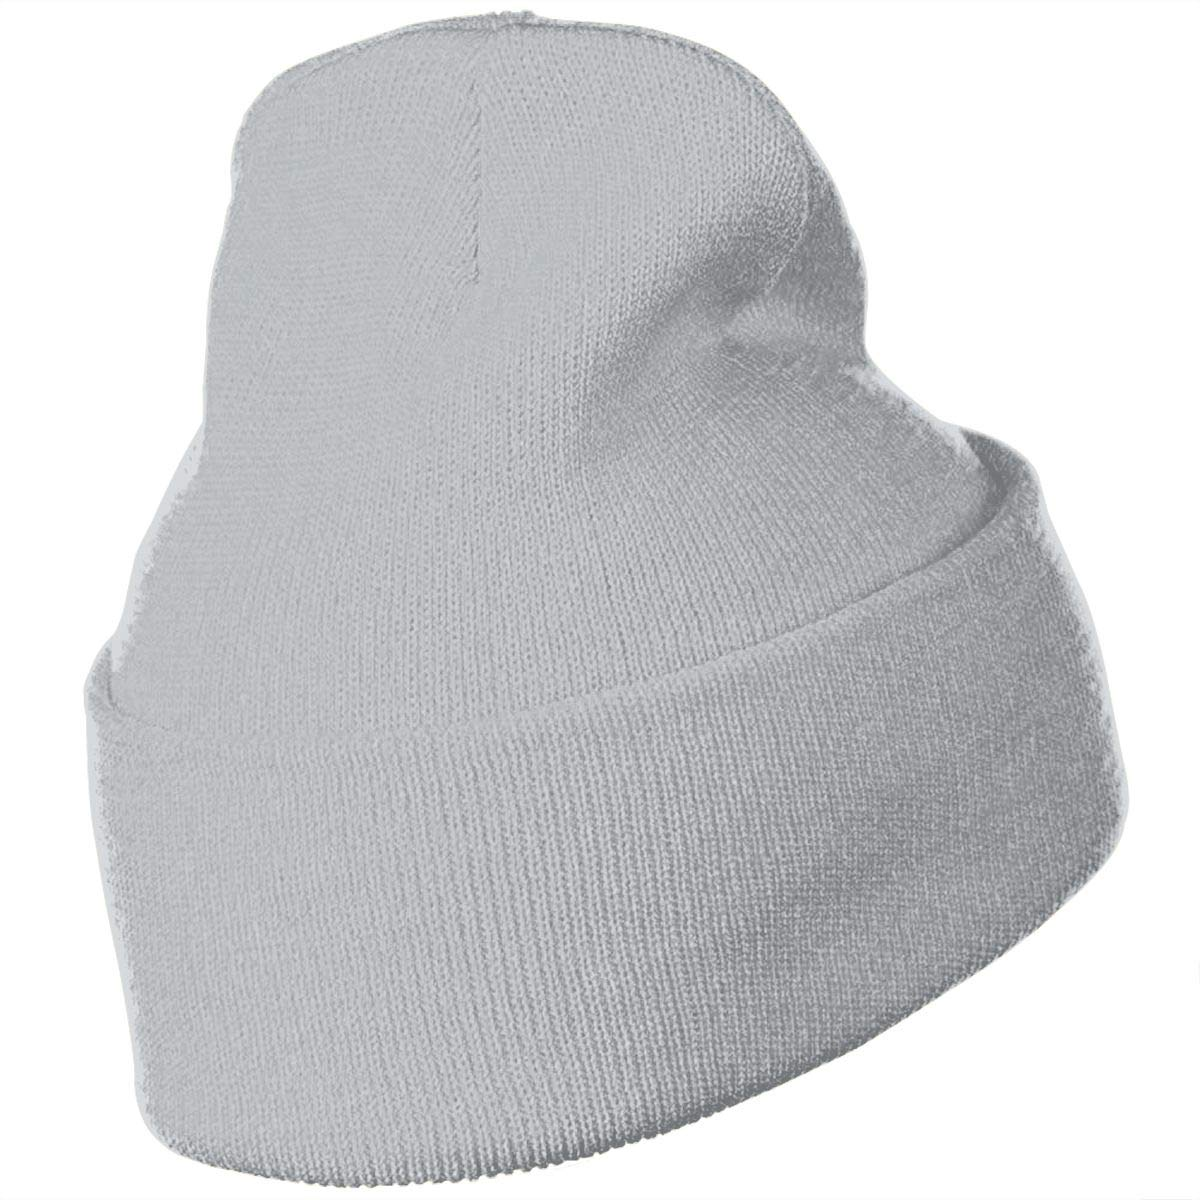 Shark-sea Warm Knit Winter Solid Beanie Hat Unisex Skull Cap